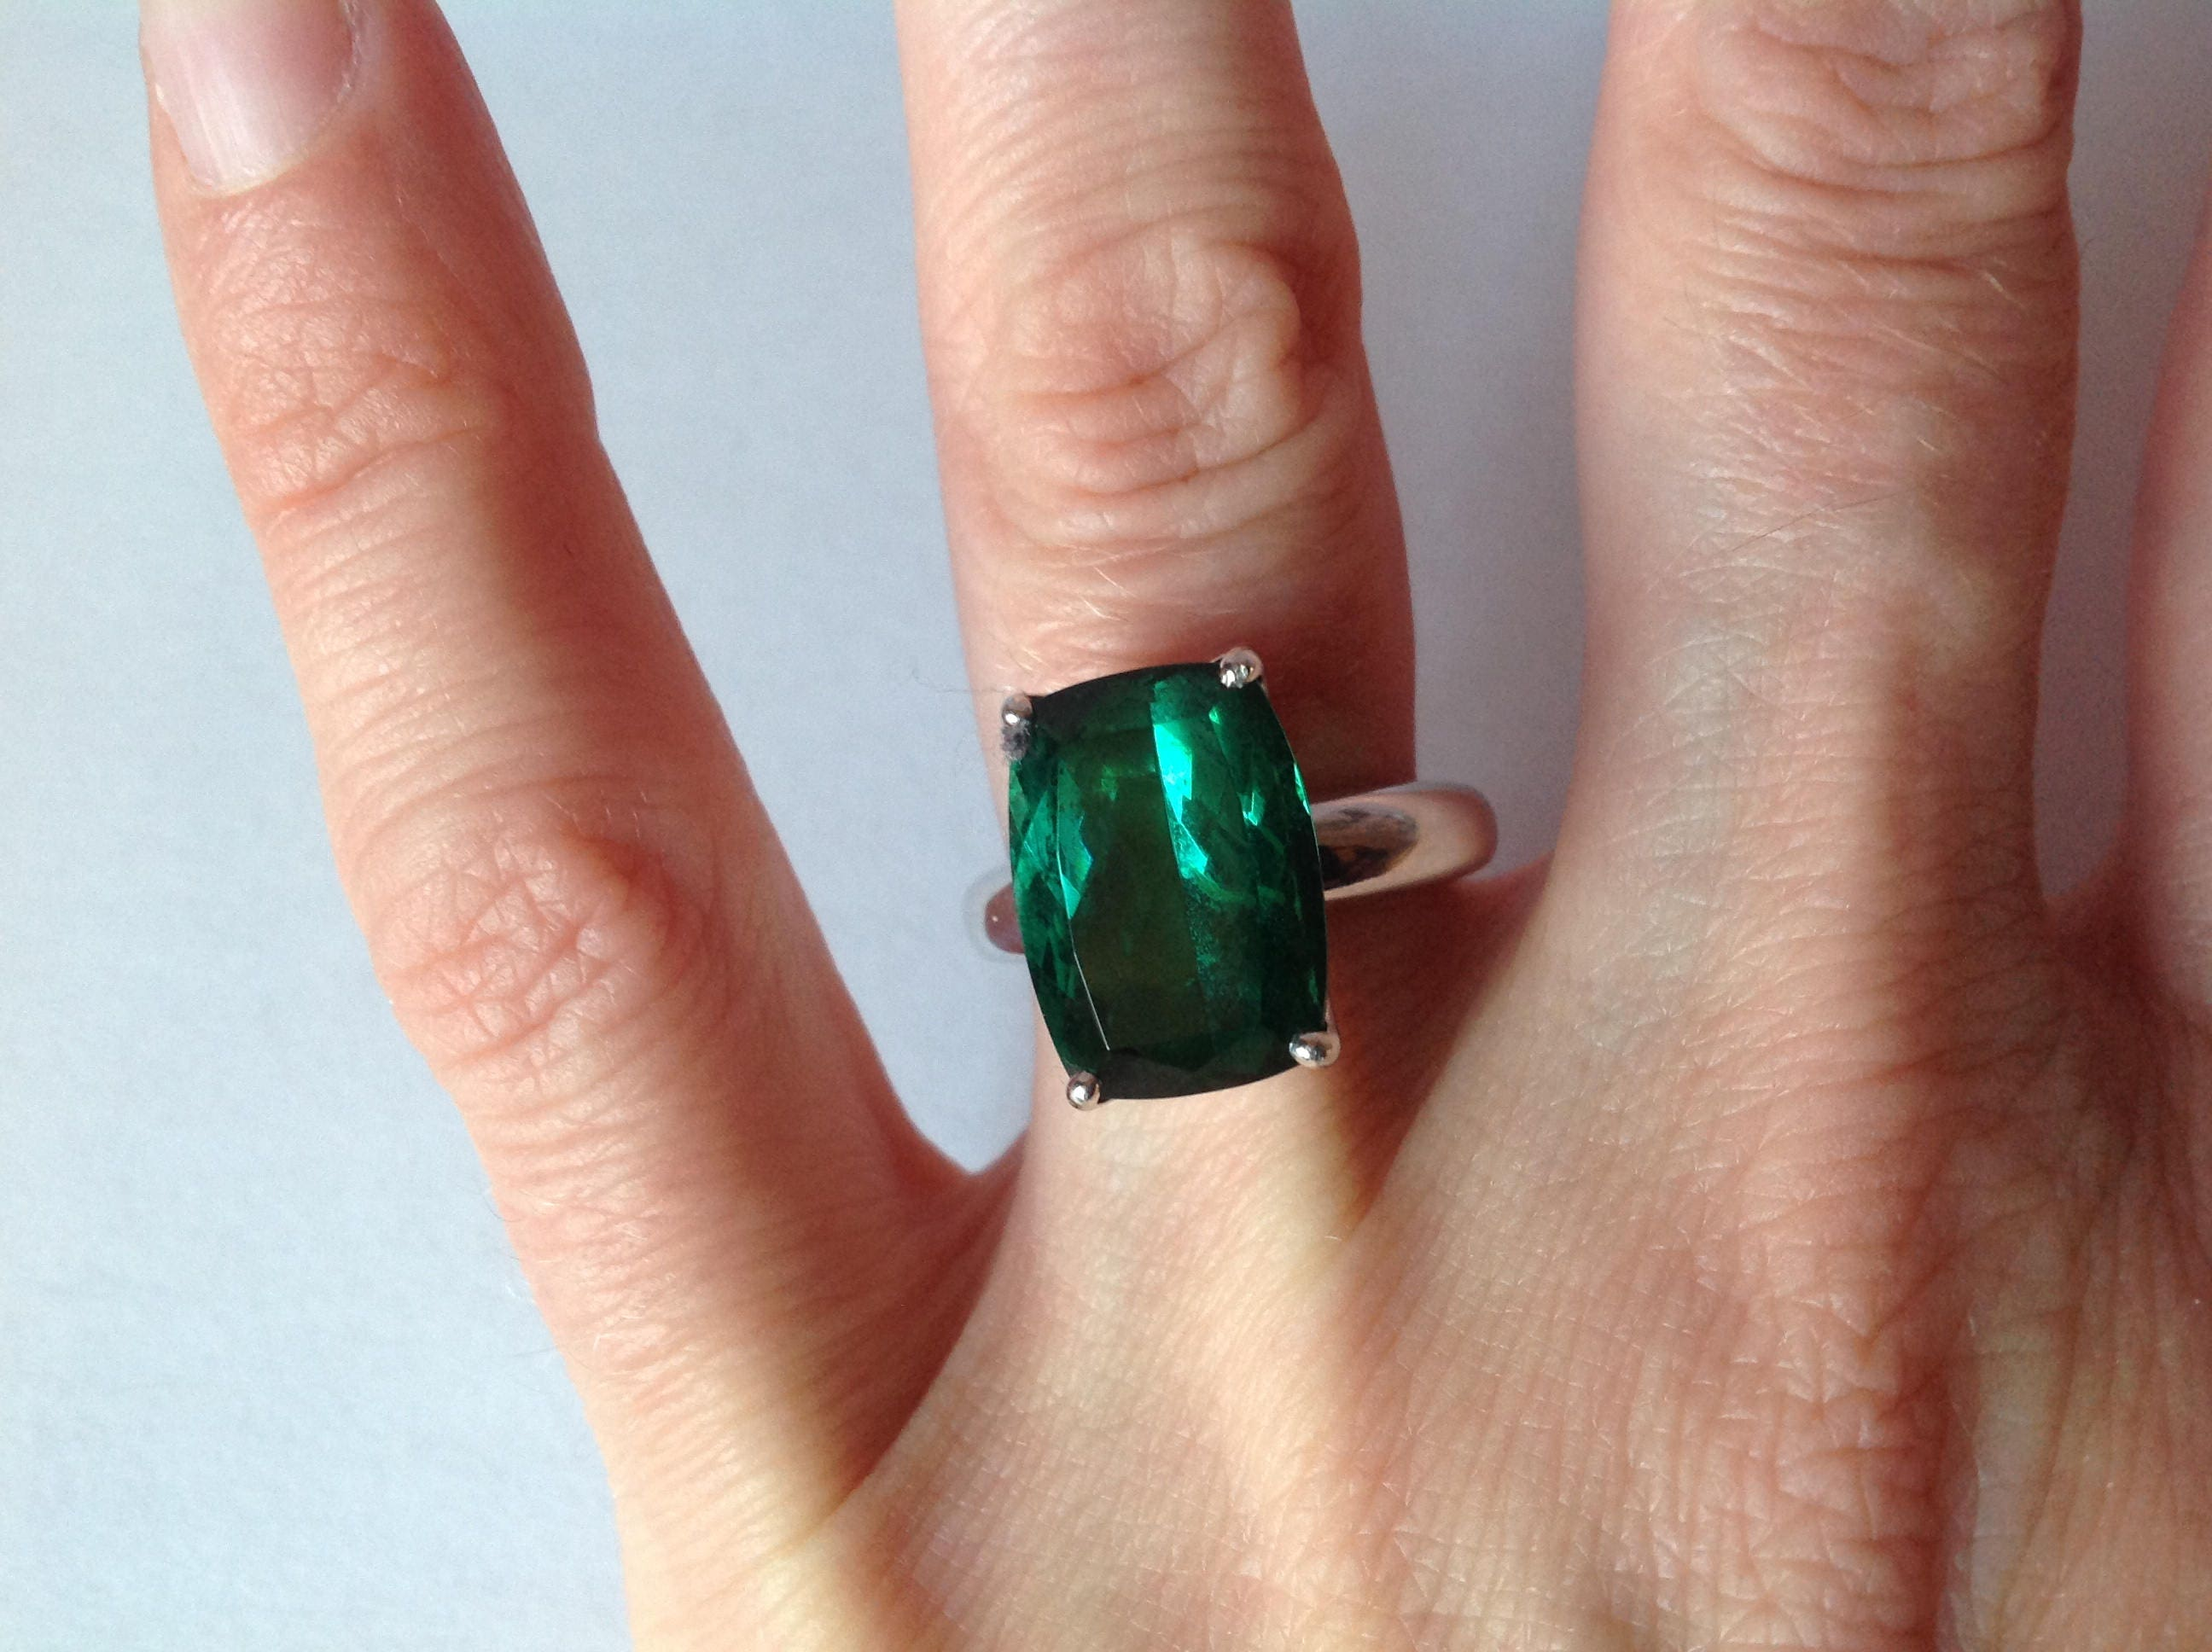 thread tourmaline engagament rocks in white jewellery and london green rings halo ring carat teal products sold emerald grain with cut an mount gold